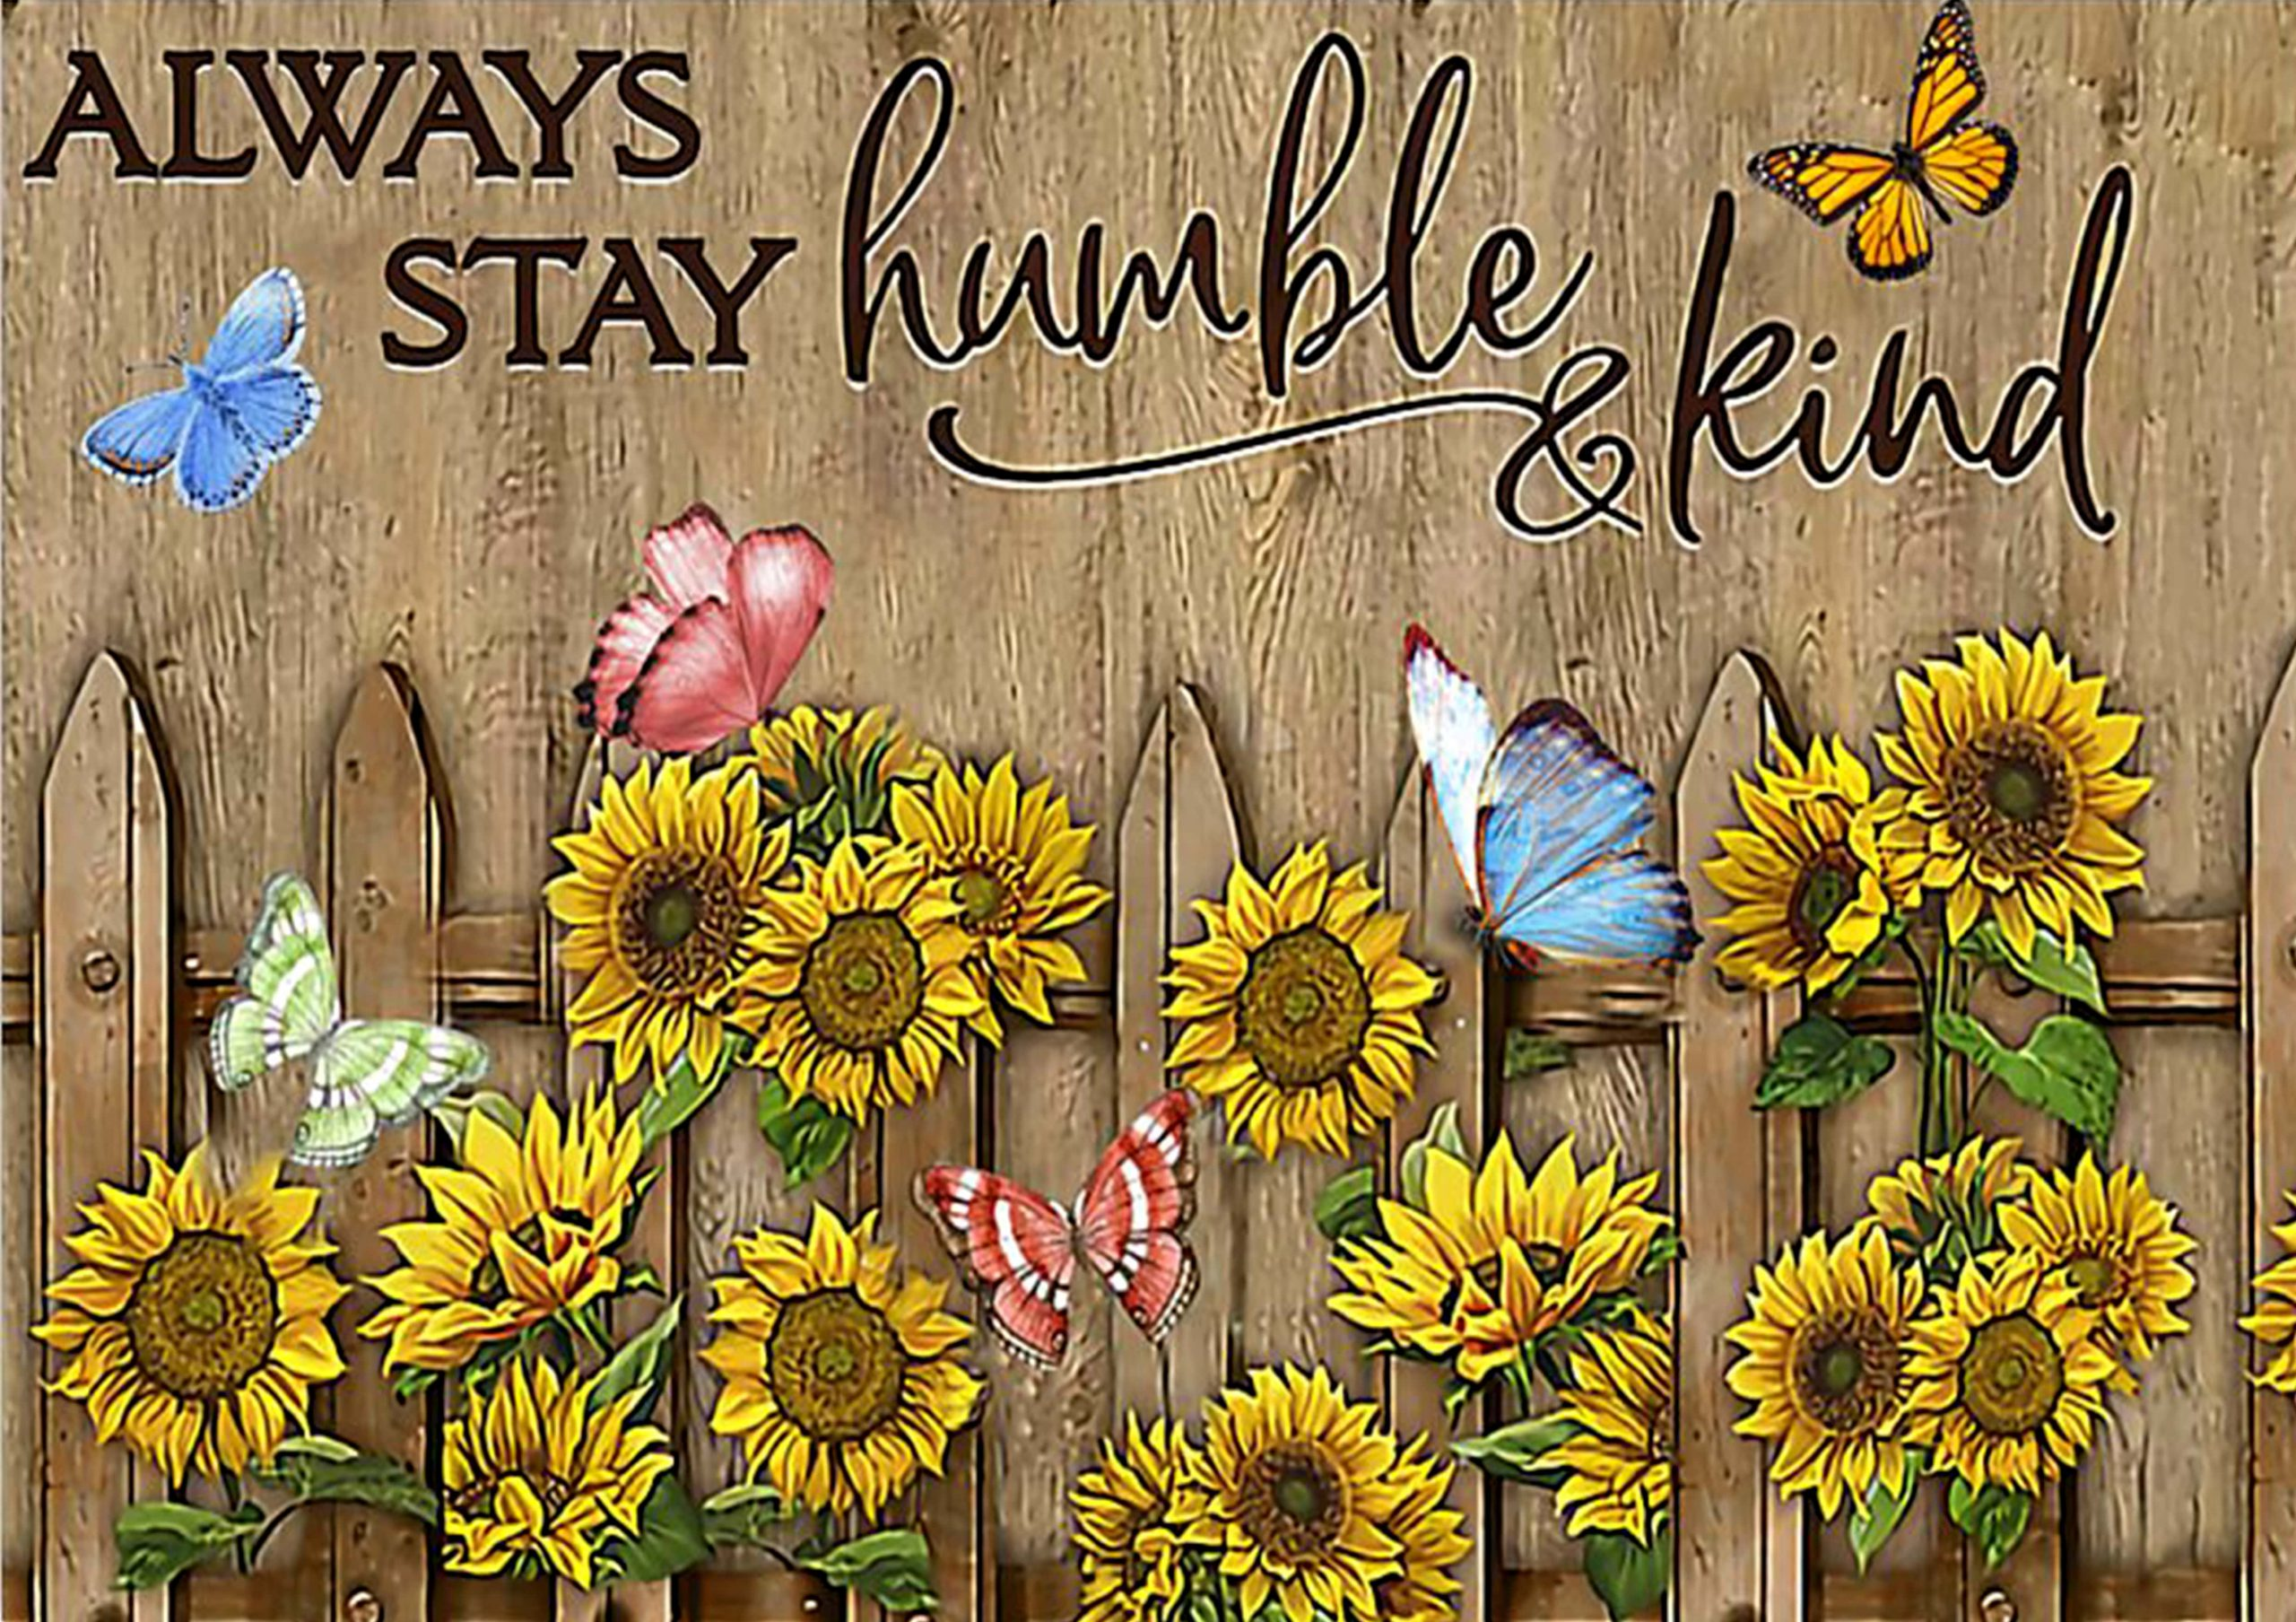 always stay humble and kind butterfly and sunflower poster 1 - Copy (2)